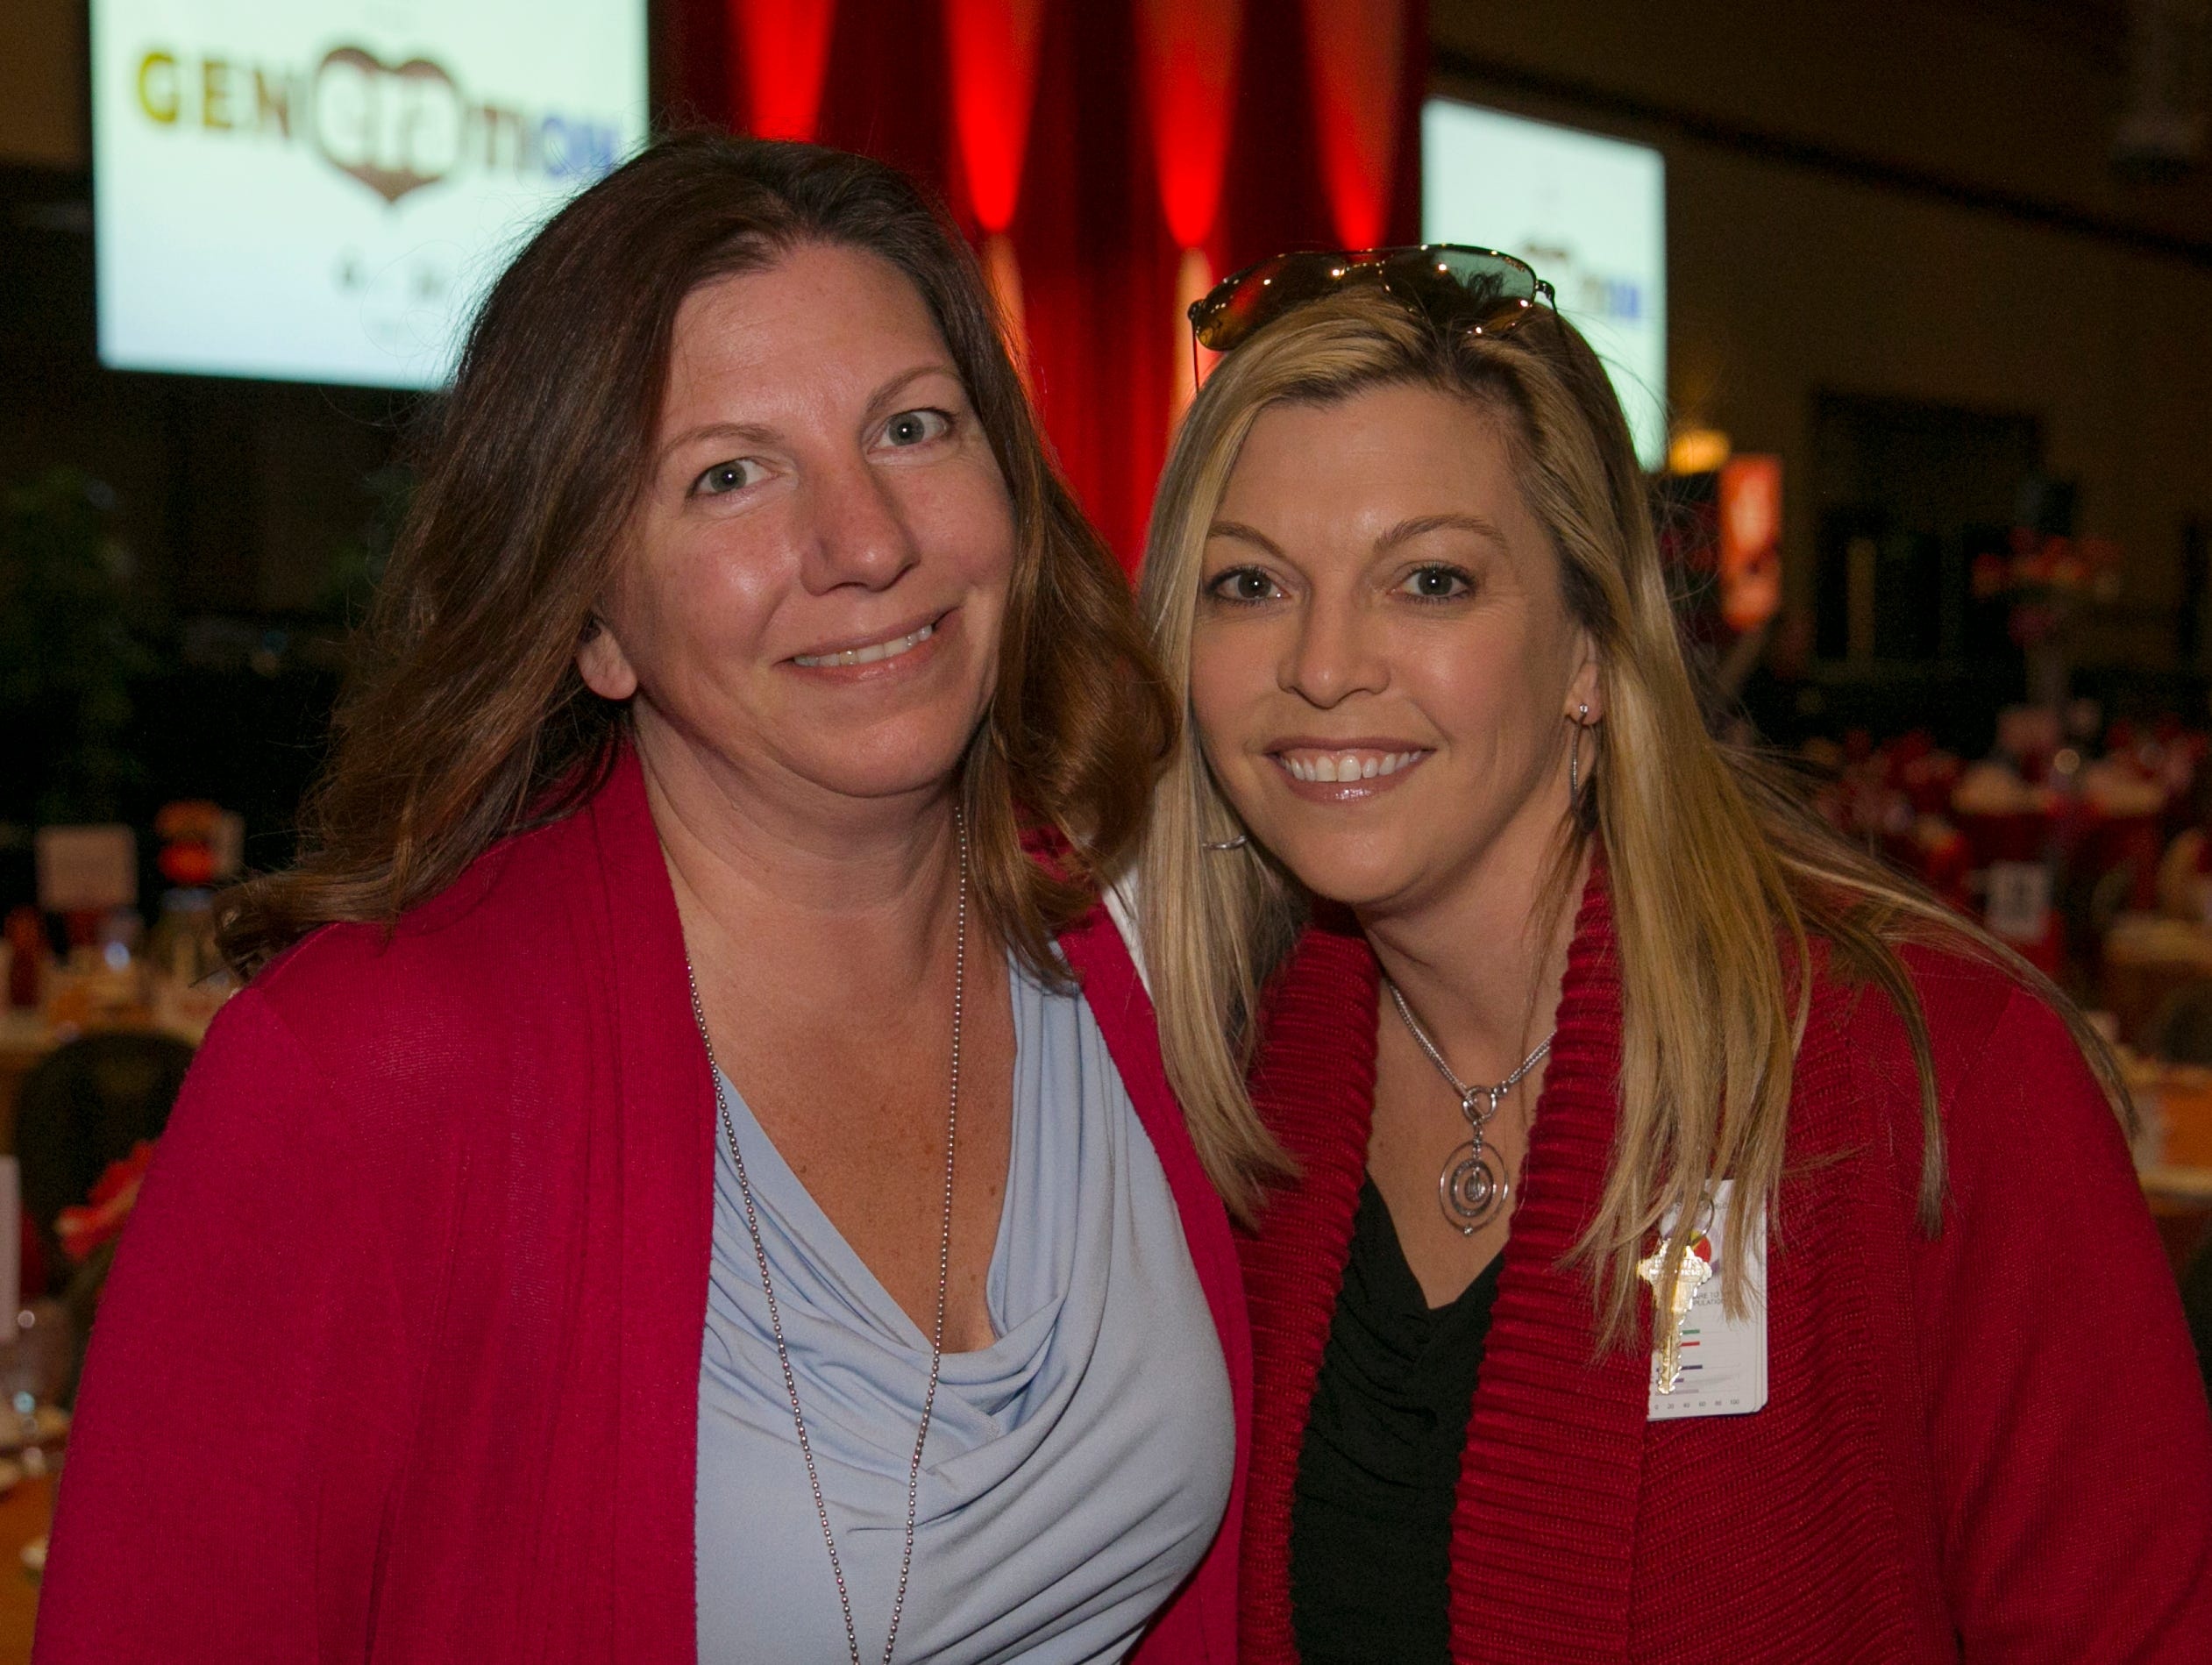 Tammy Evans and Jennifer Williamson during the 15th Annual Go Red for Women Luncheon on Friday March 1, 2019 held at the downtown Reno Ballroom.